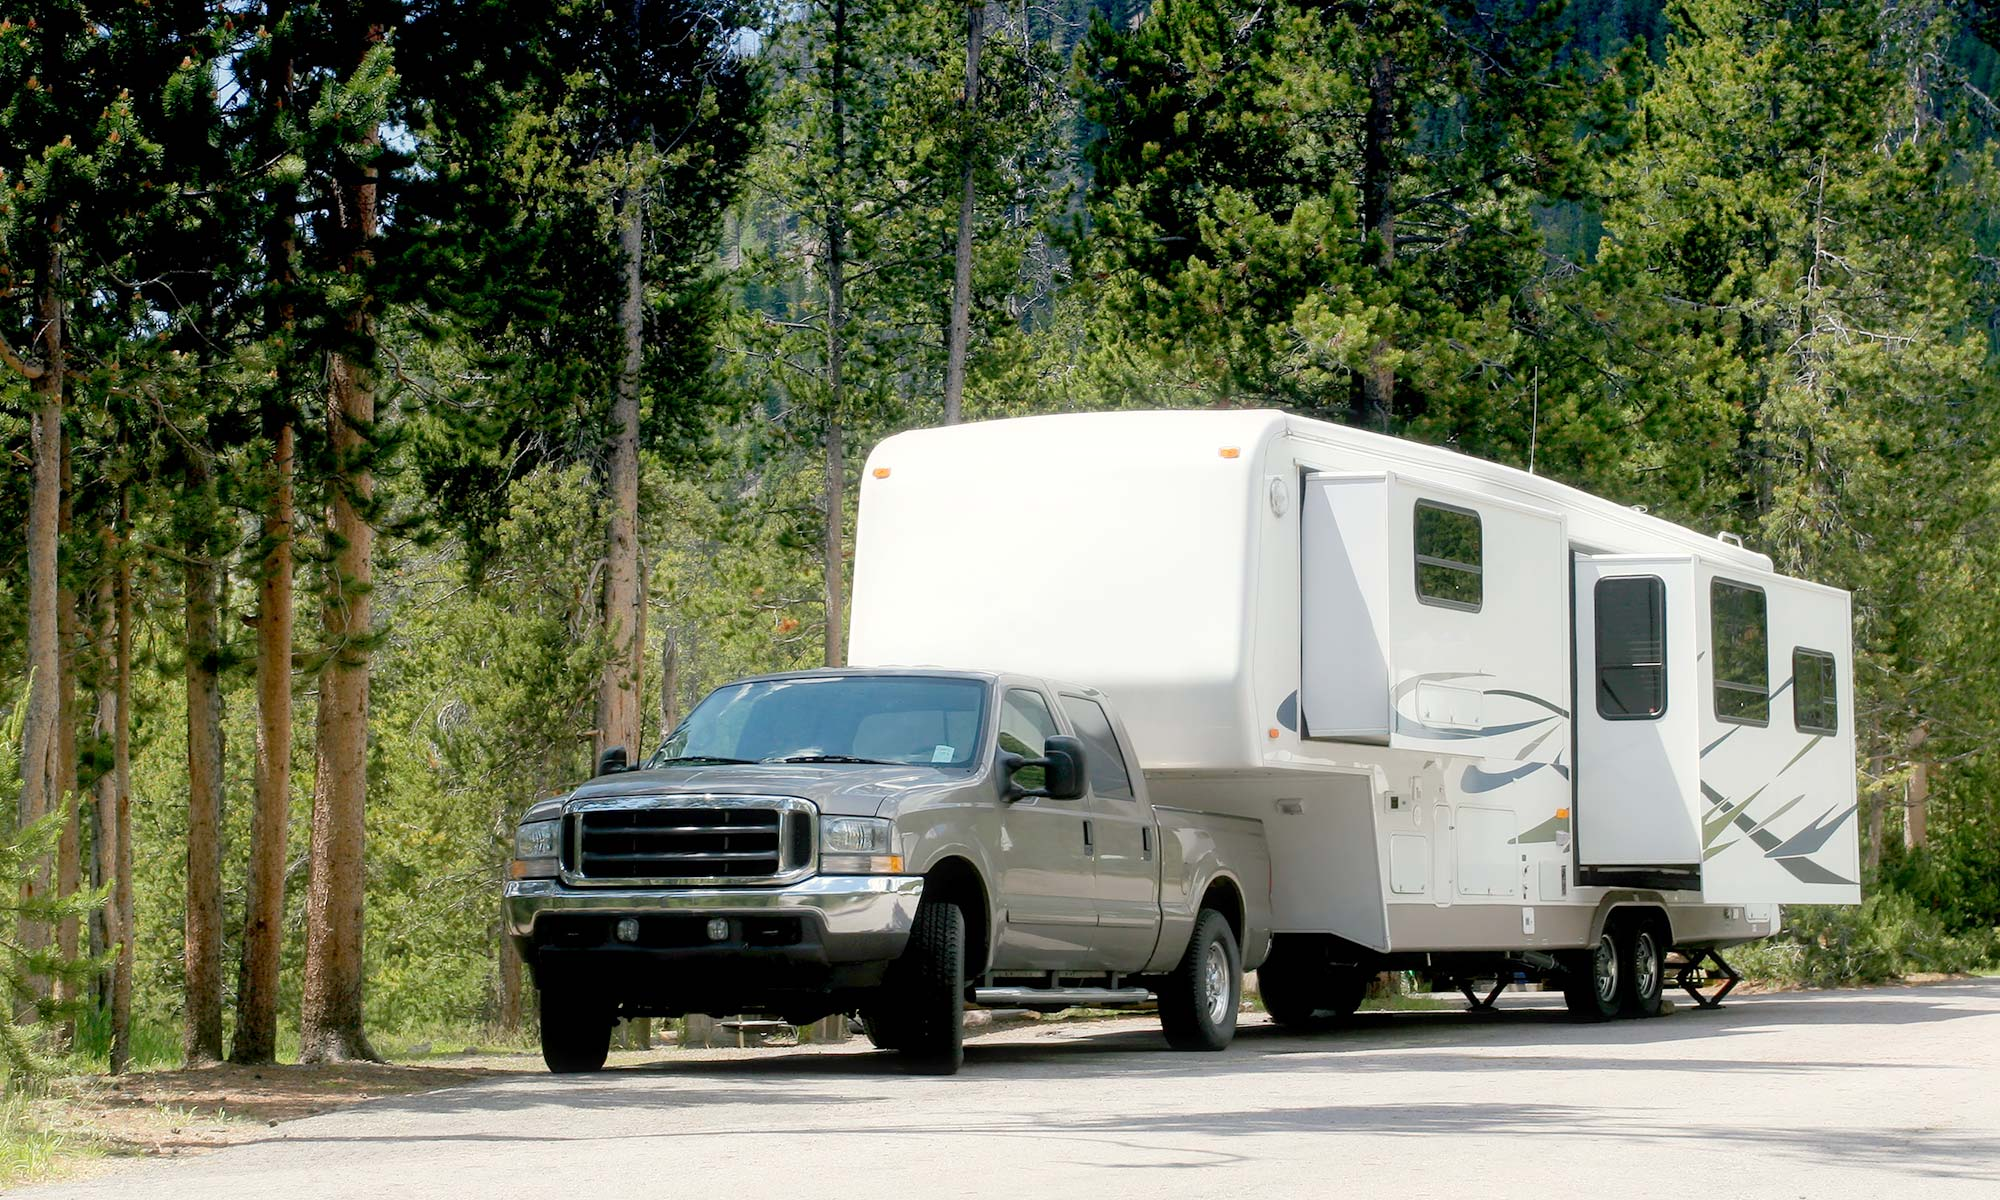 A pickup towing a camper.